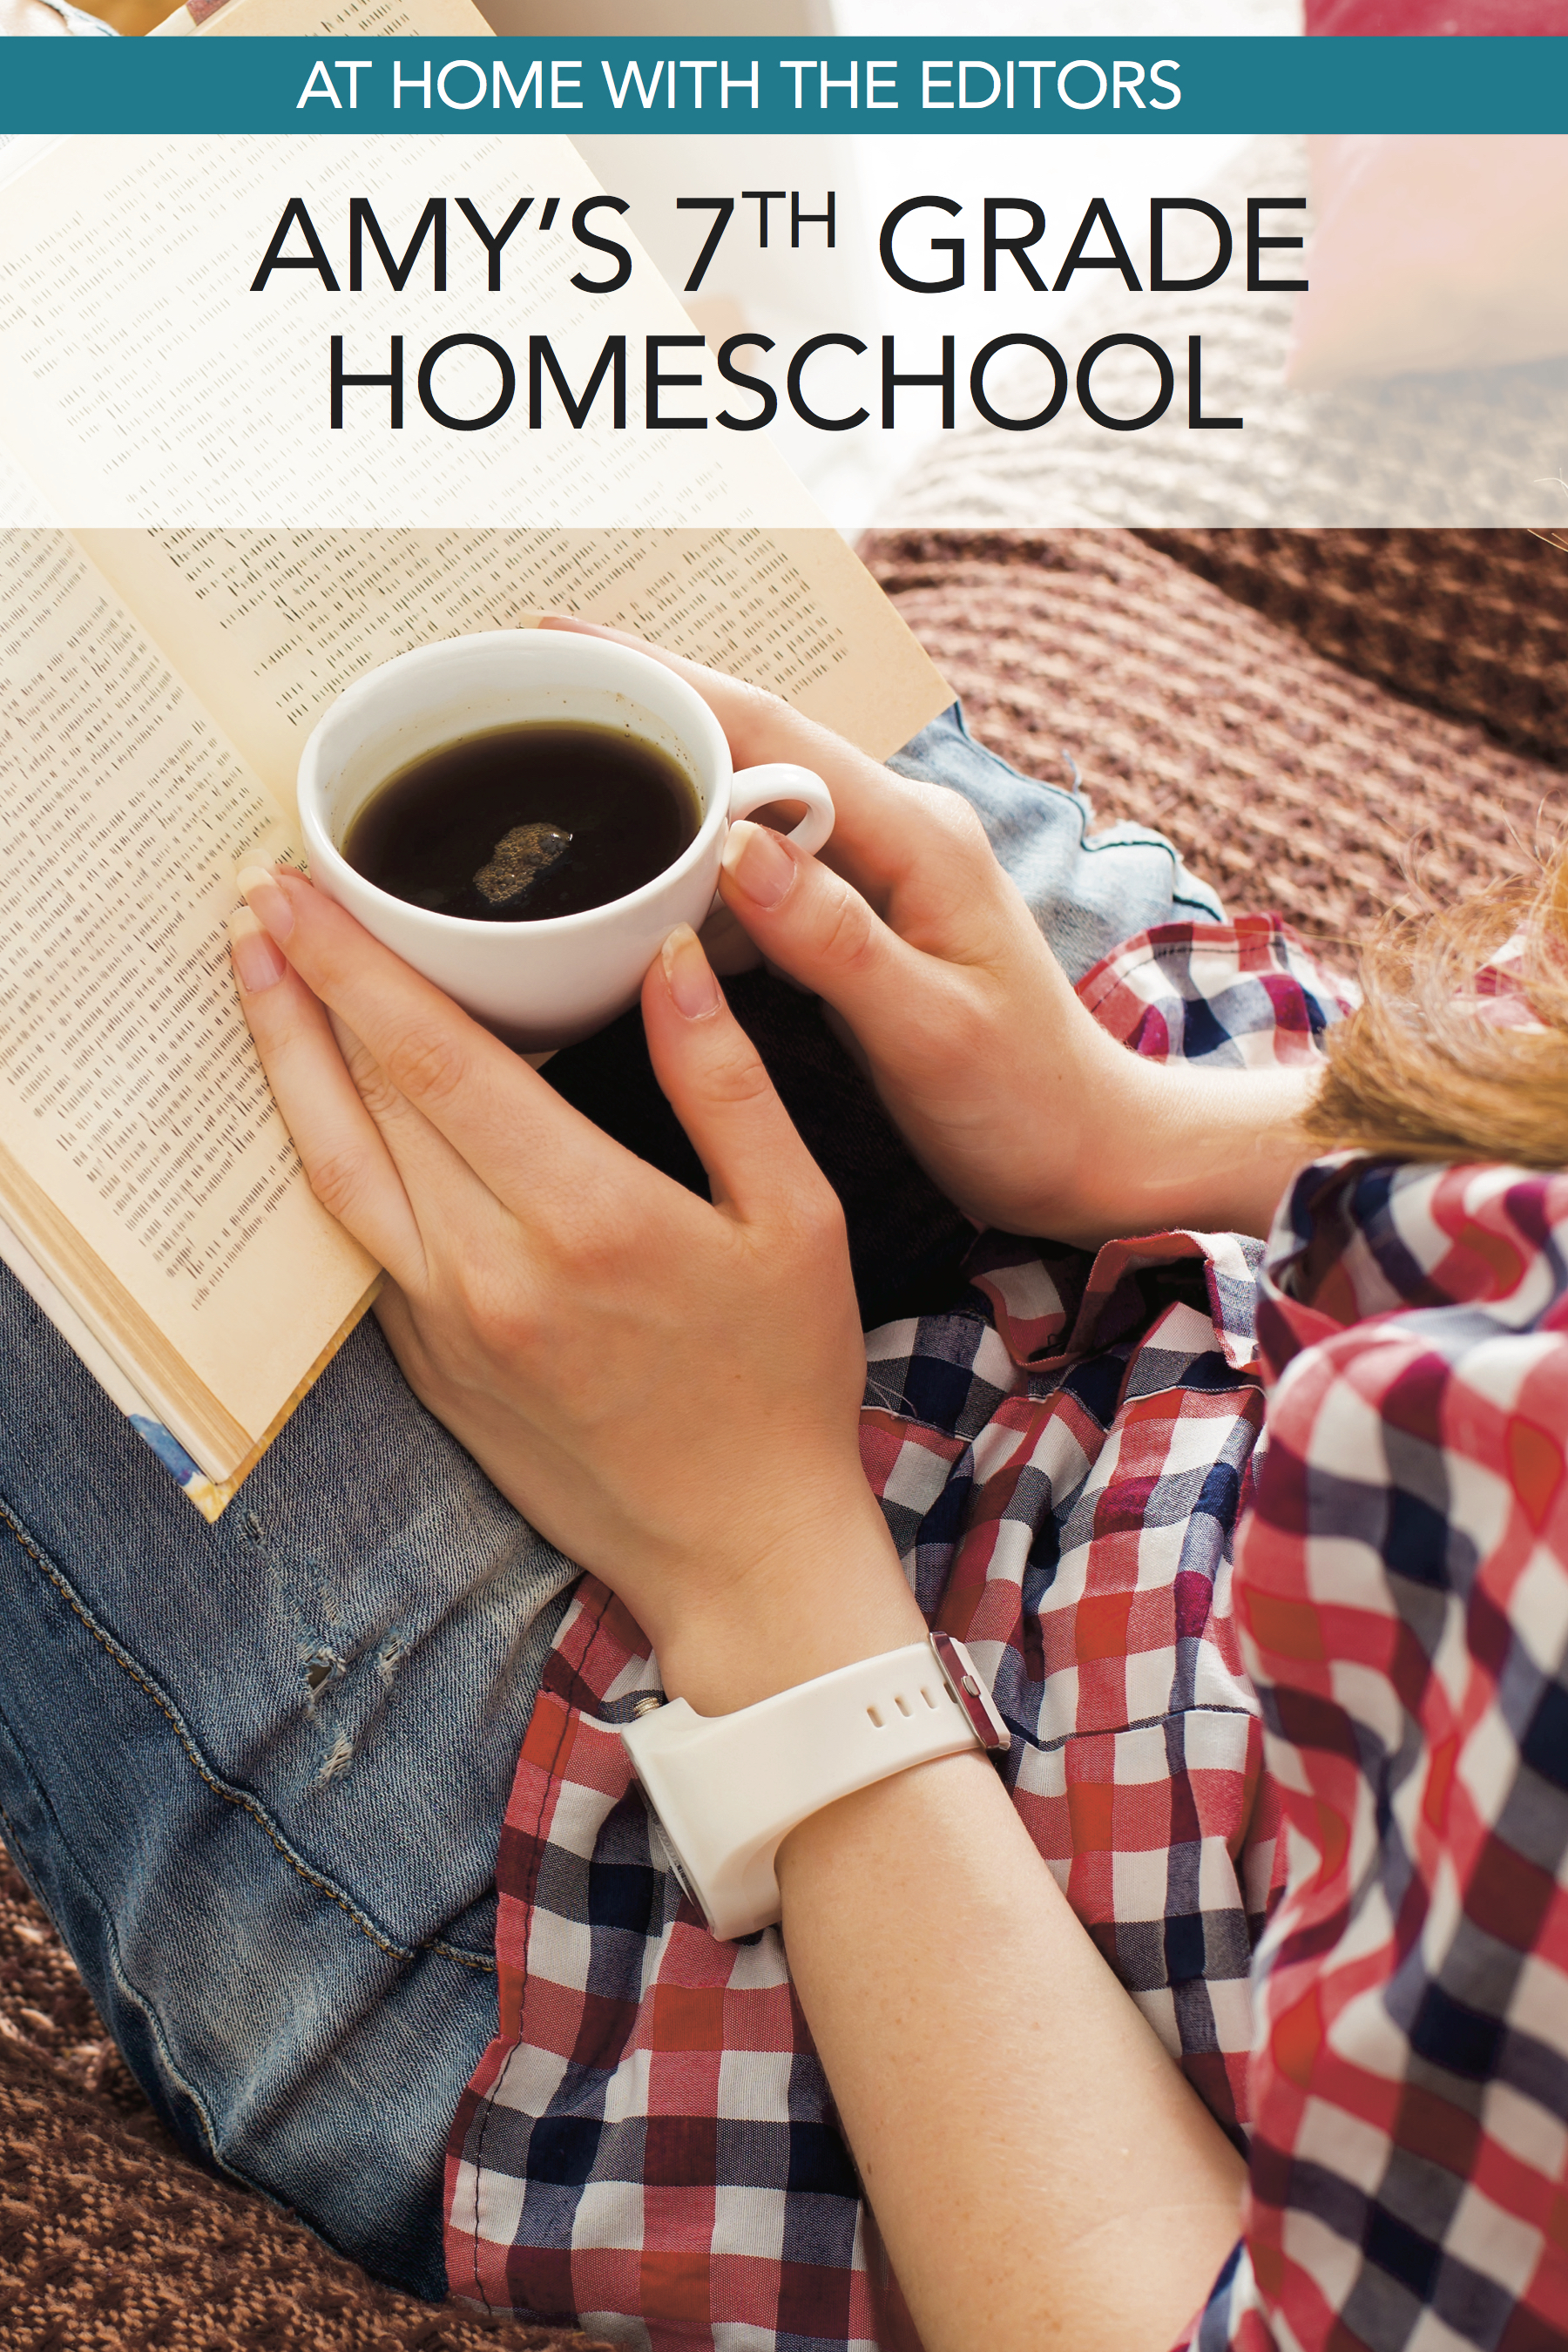 At Home with the Editors: Inside Amy's 7th Grade Homeschool